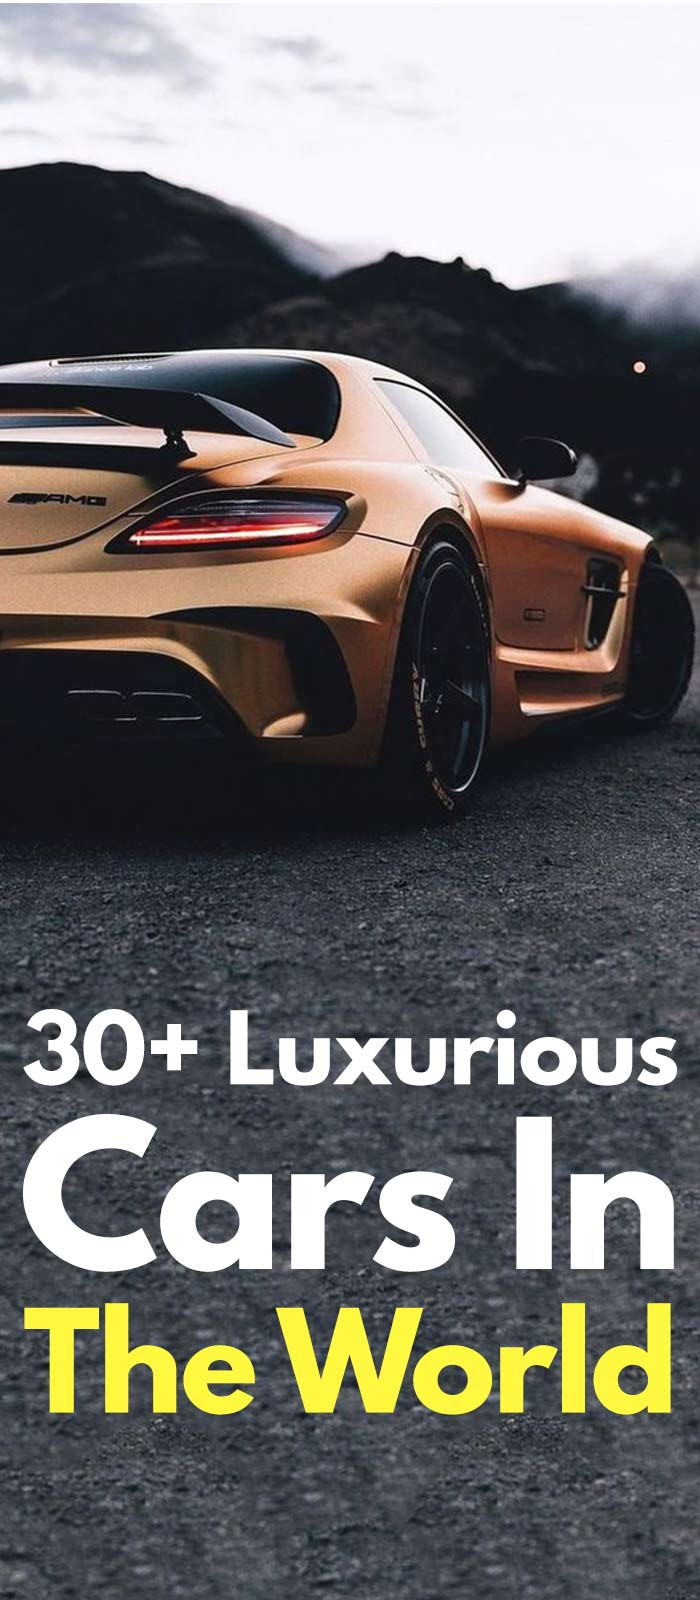 Luxurious Cars In The World.